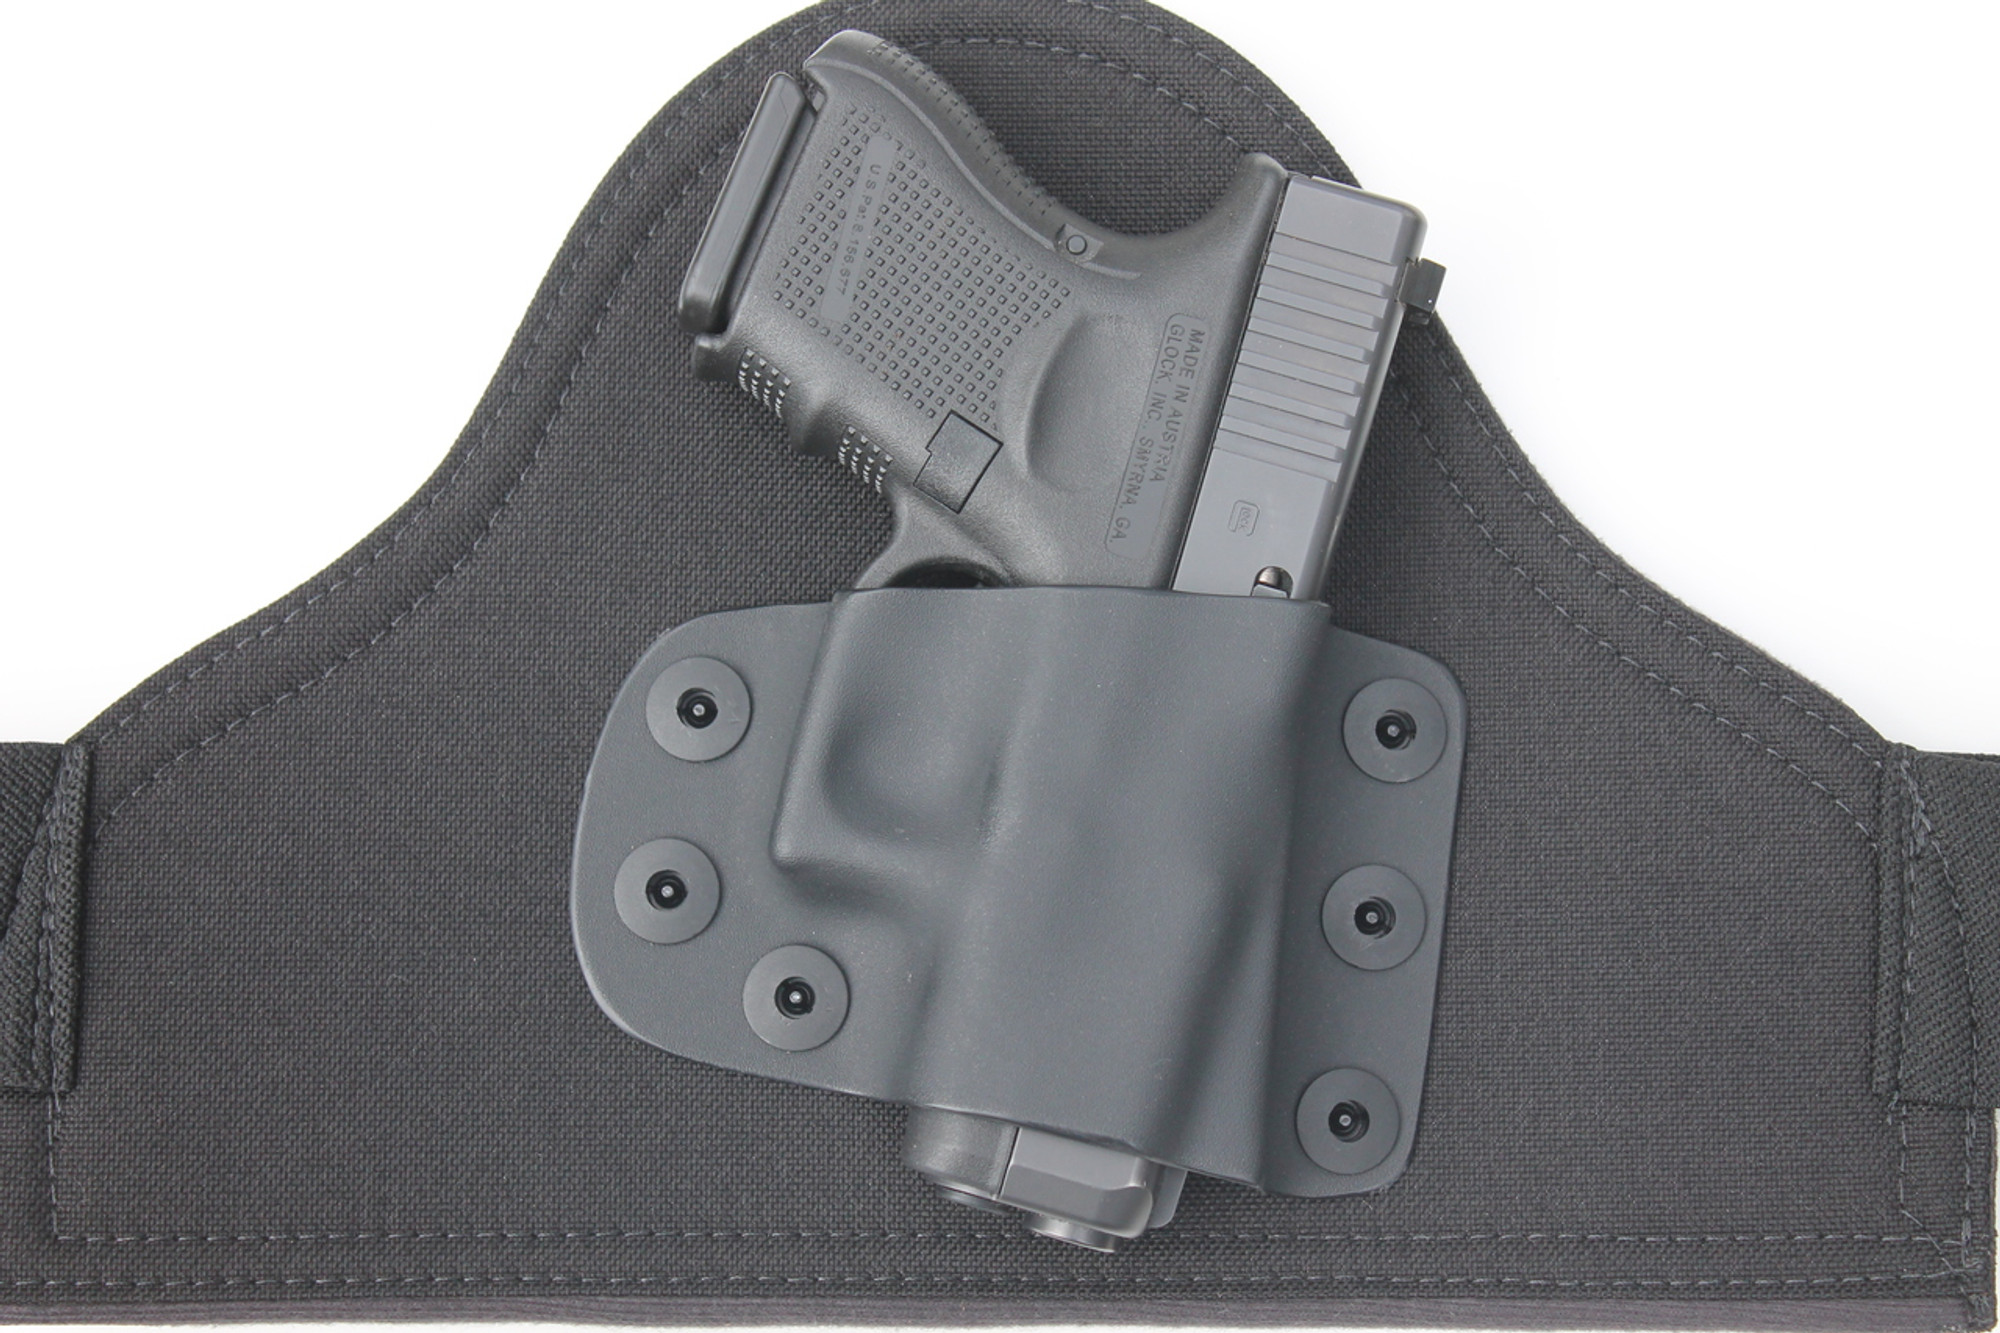 Sports & Entertainment New Fashion Holster For Gun Inside Waistband Concealed Carry Pistol Holster Ruger Nylon Holster Durable In Use Hunting Bags & Holsters